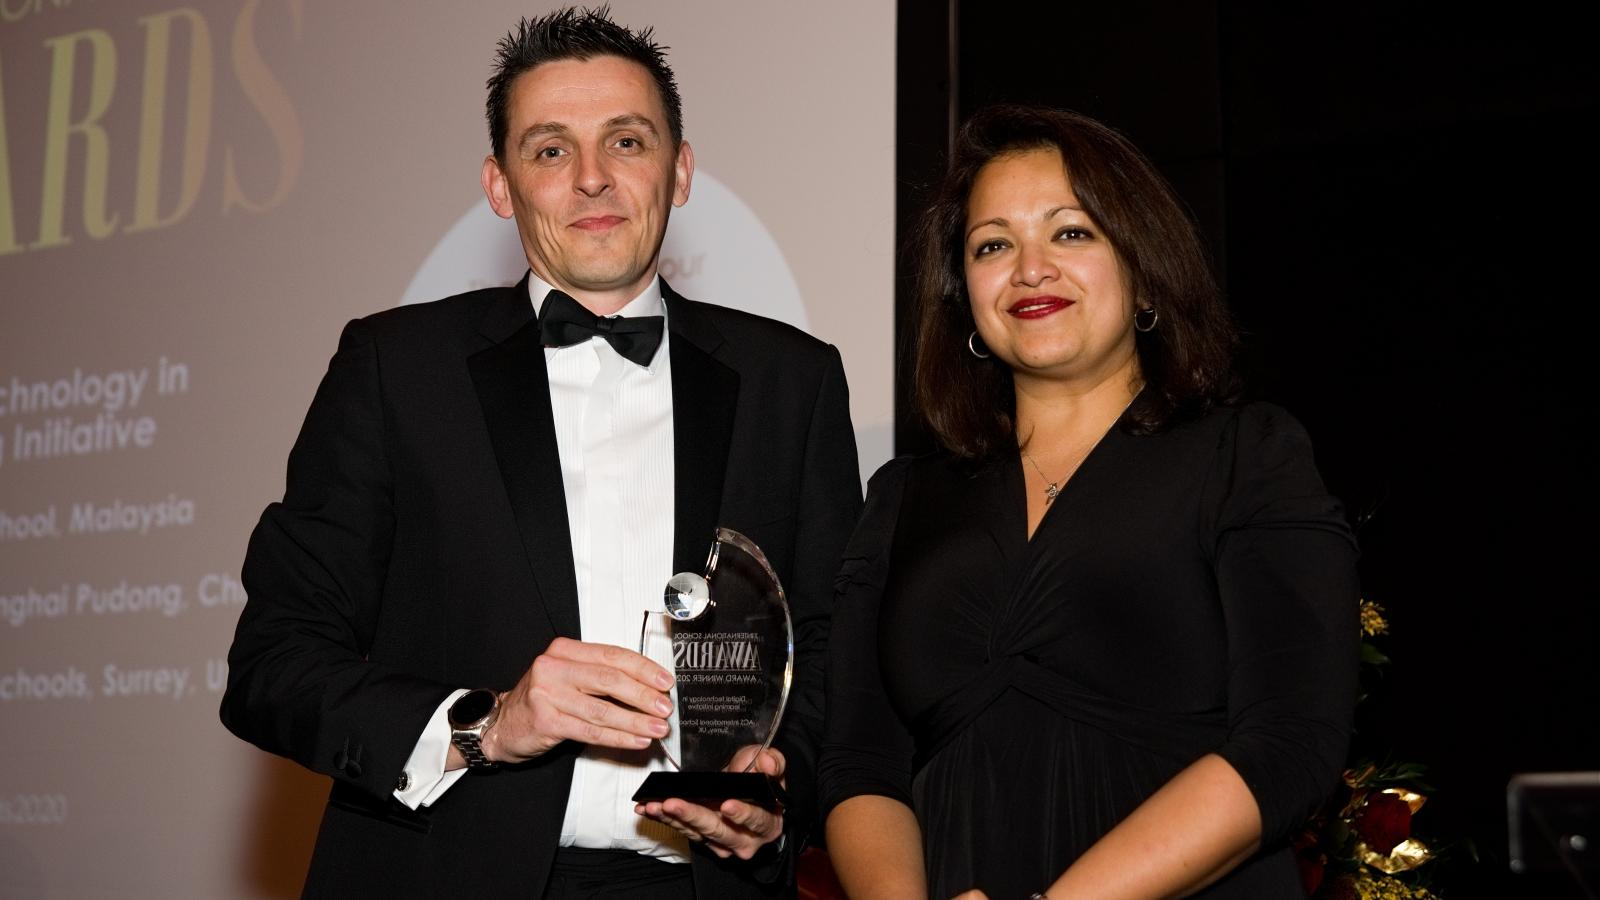 Graeme Lawrie receiving his award from Helen Konstantopoulous